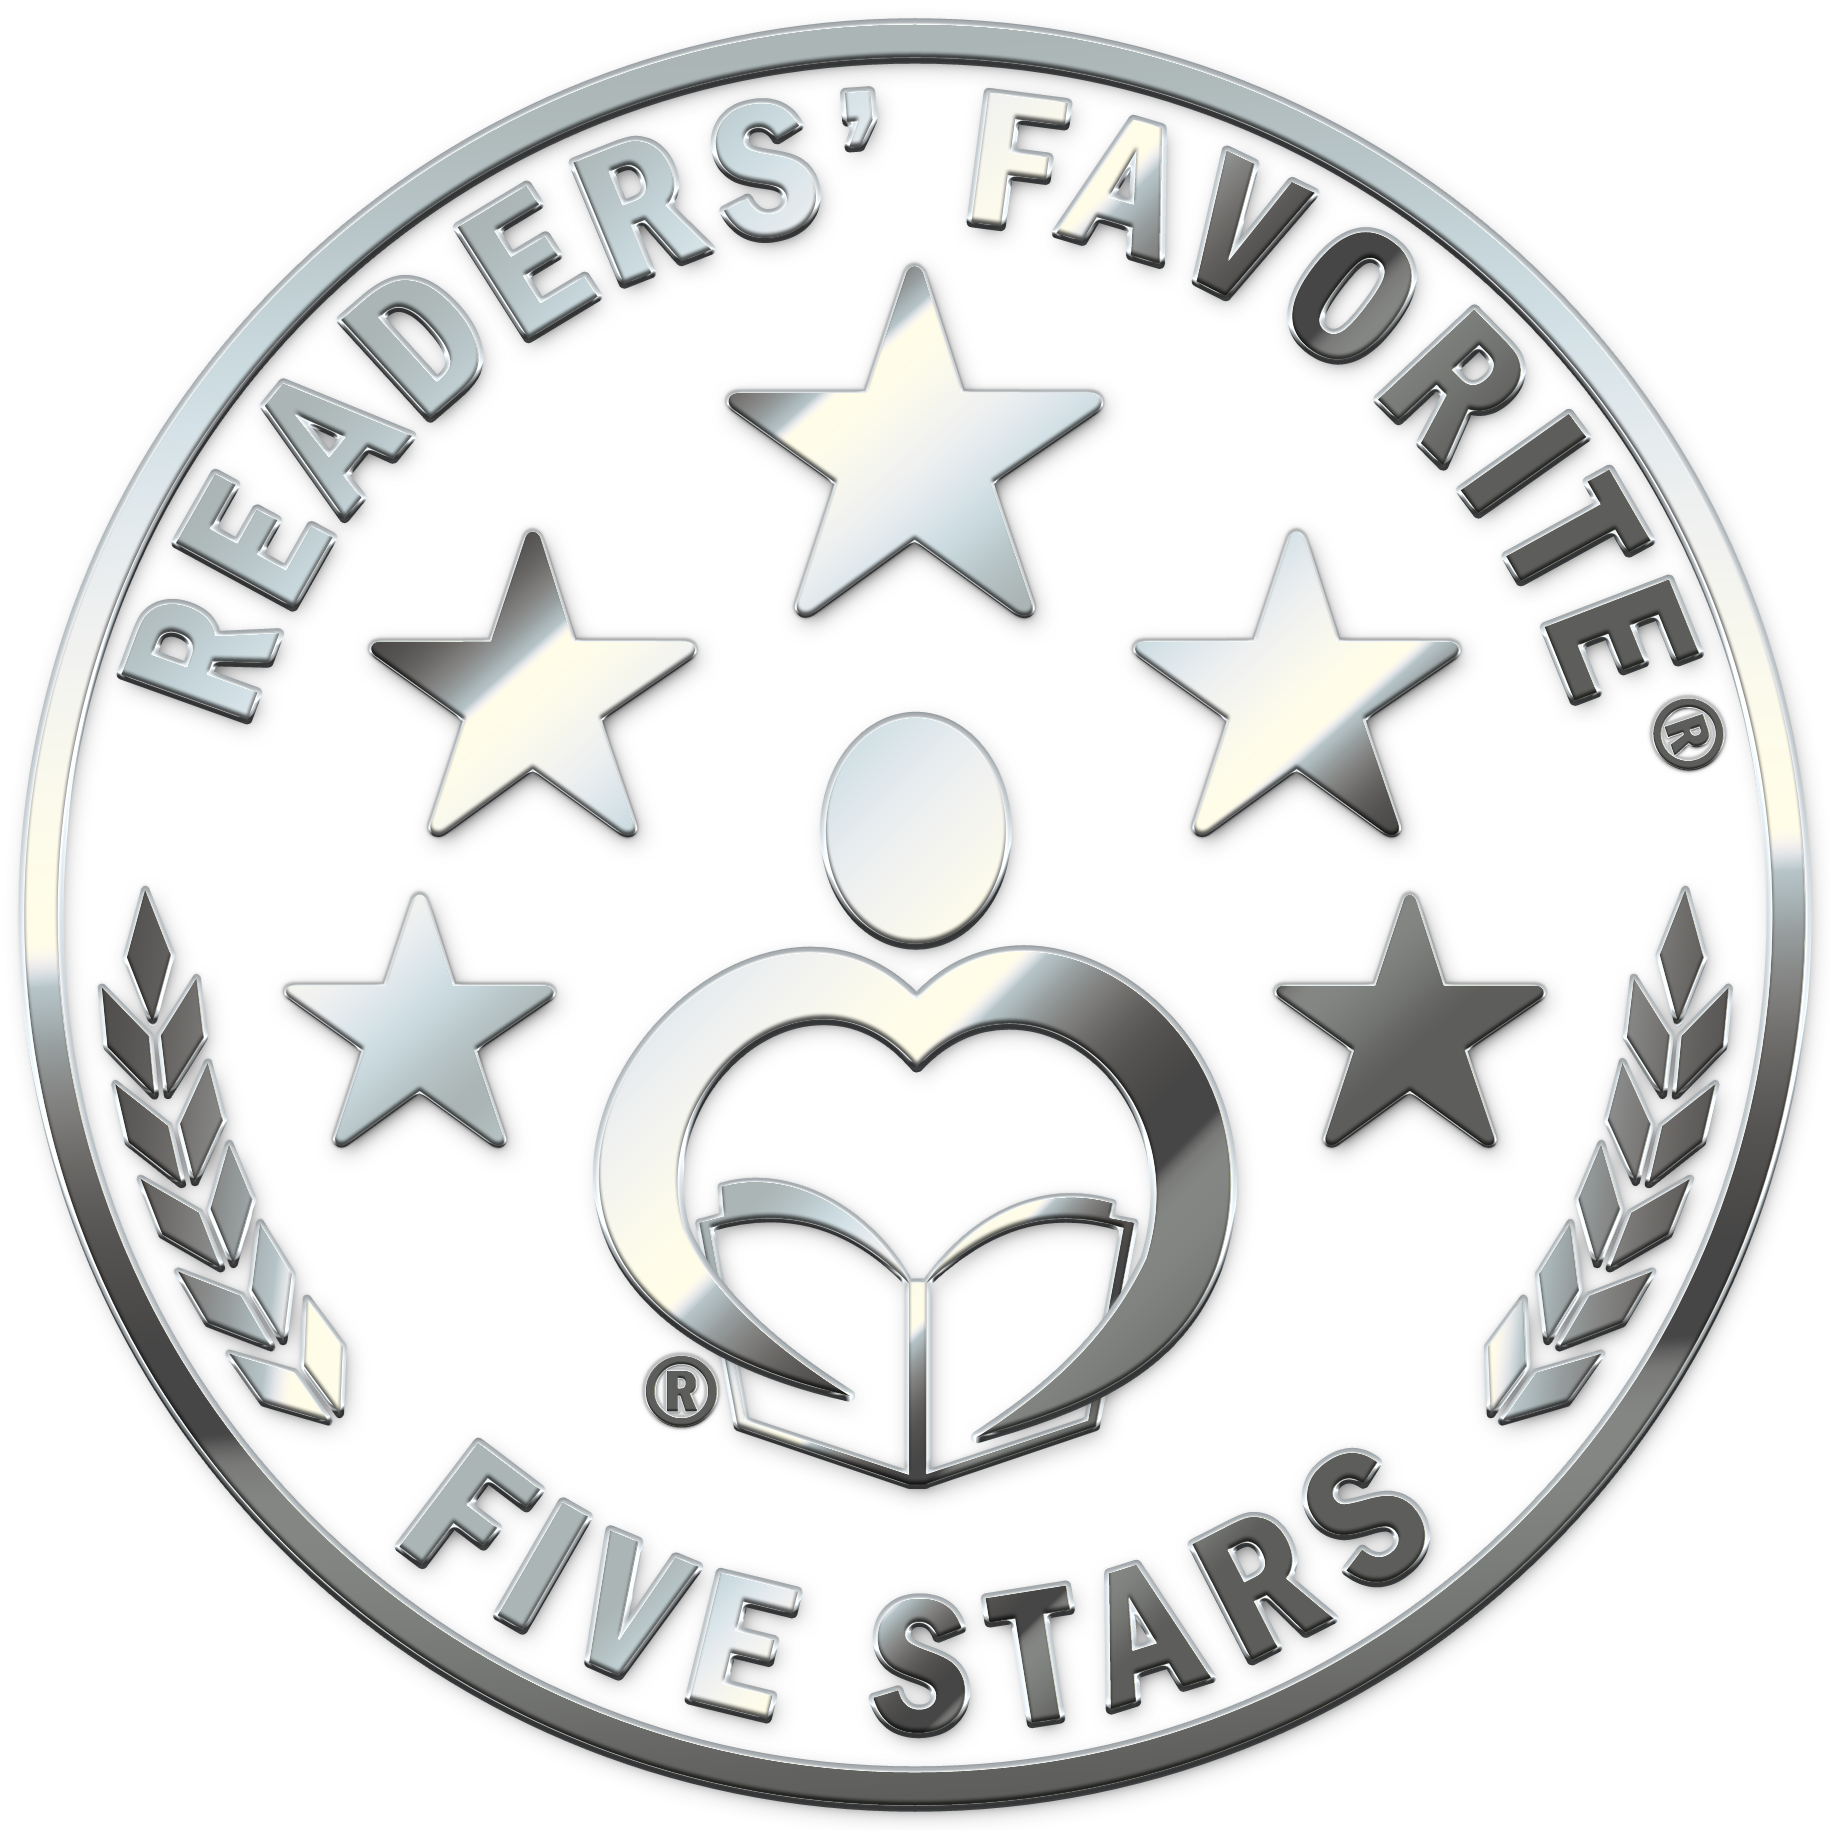 """Readers' Favorite 5 Star rating review: - Besa Po by Hana Noka takes us readers back in time to the age of the Roman Empire. But, this book follows the life of Queen Teuta of fabled Illyria and recounts the love she has for King Agron. However, she is a warrior in her own right and is driven by a """"besa po"""", a strong oath or promise to defend her homeland against the Roman invaders. Queen Teuta suffers great personal loss at the hands of the Romans, the military superpower of their times, and faces betrayal by members of her own family. Will she be able to battle the Romans on equal terms and save her people…"""